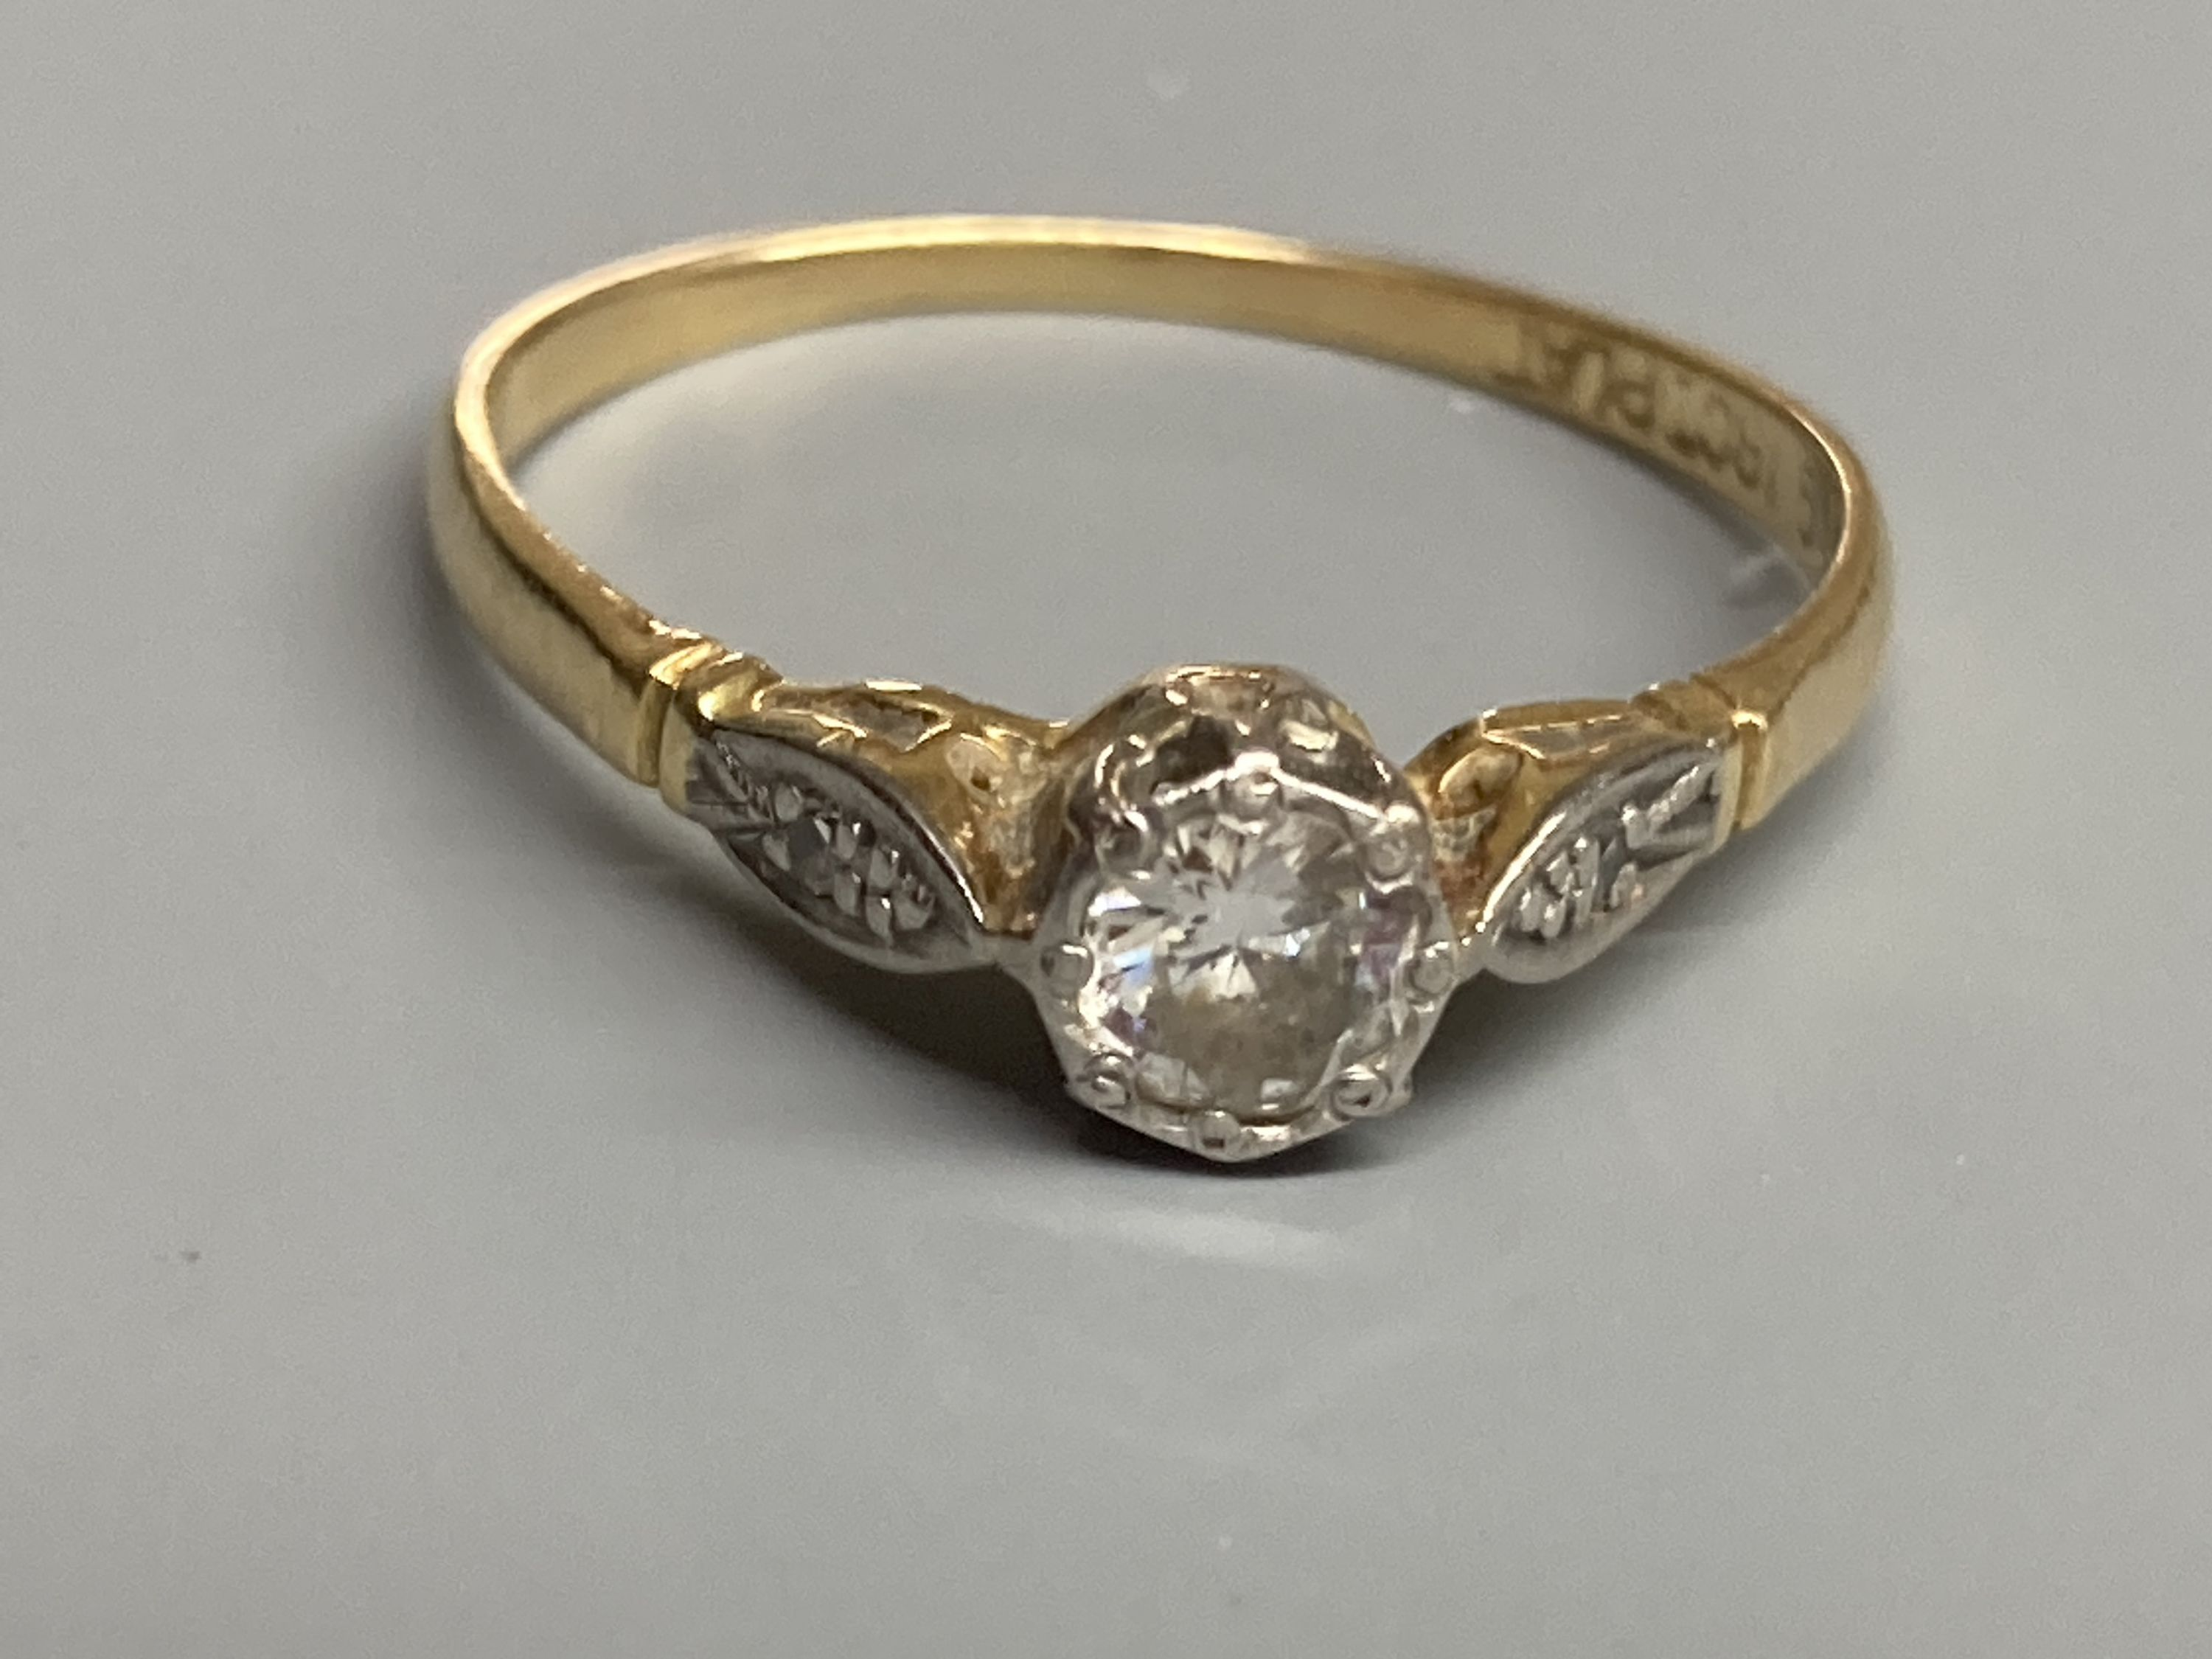 An 18ct & plat, single stone diamond ring, with diamond set shoulders, size P, gross 1.9 grams. - Image 2 of 3